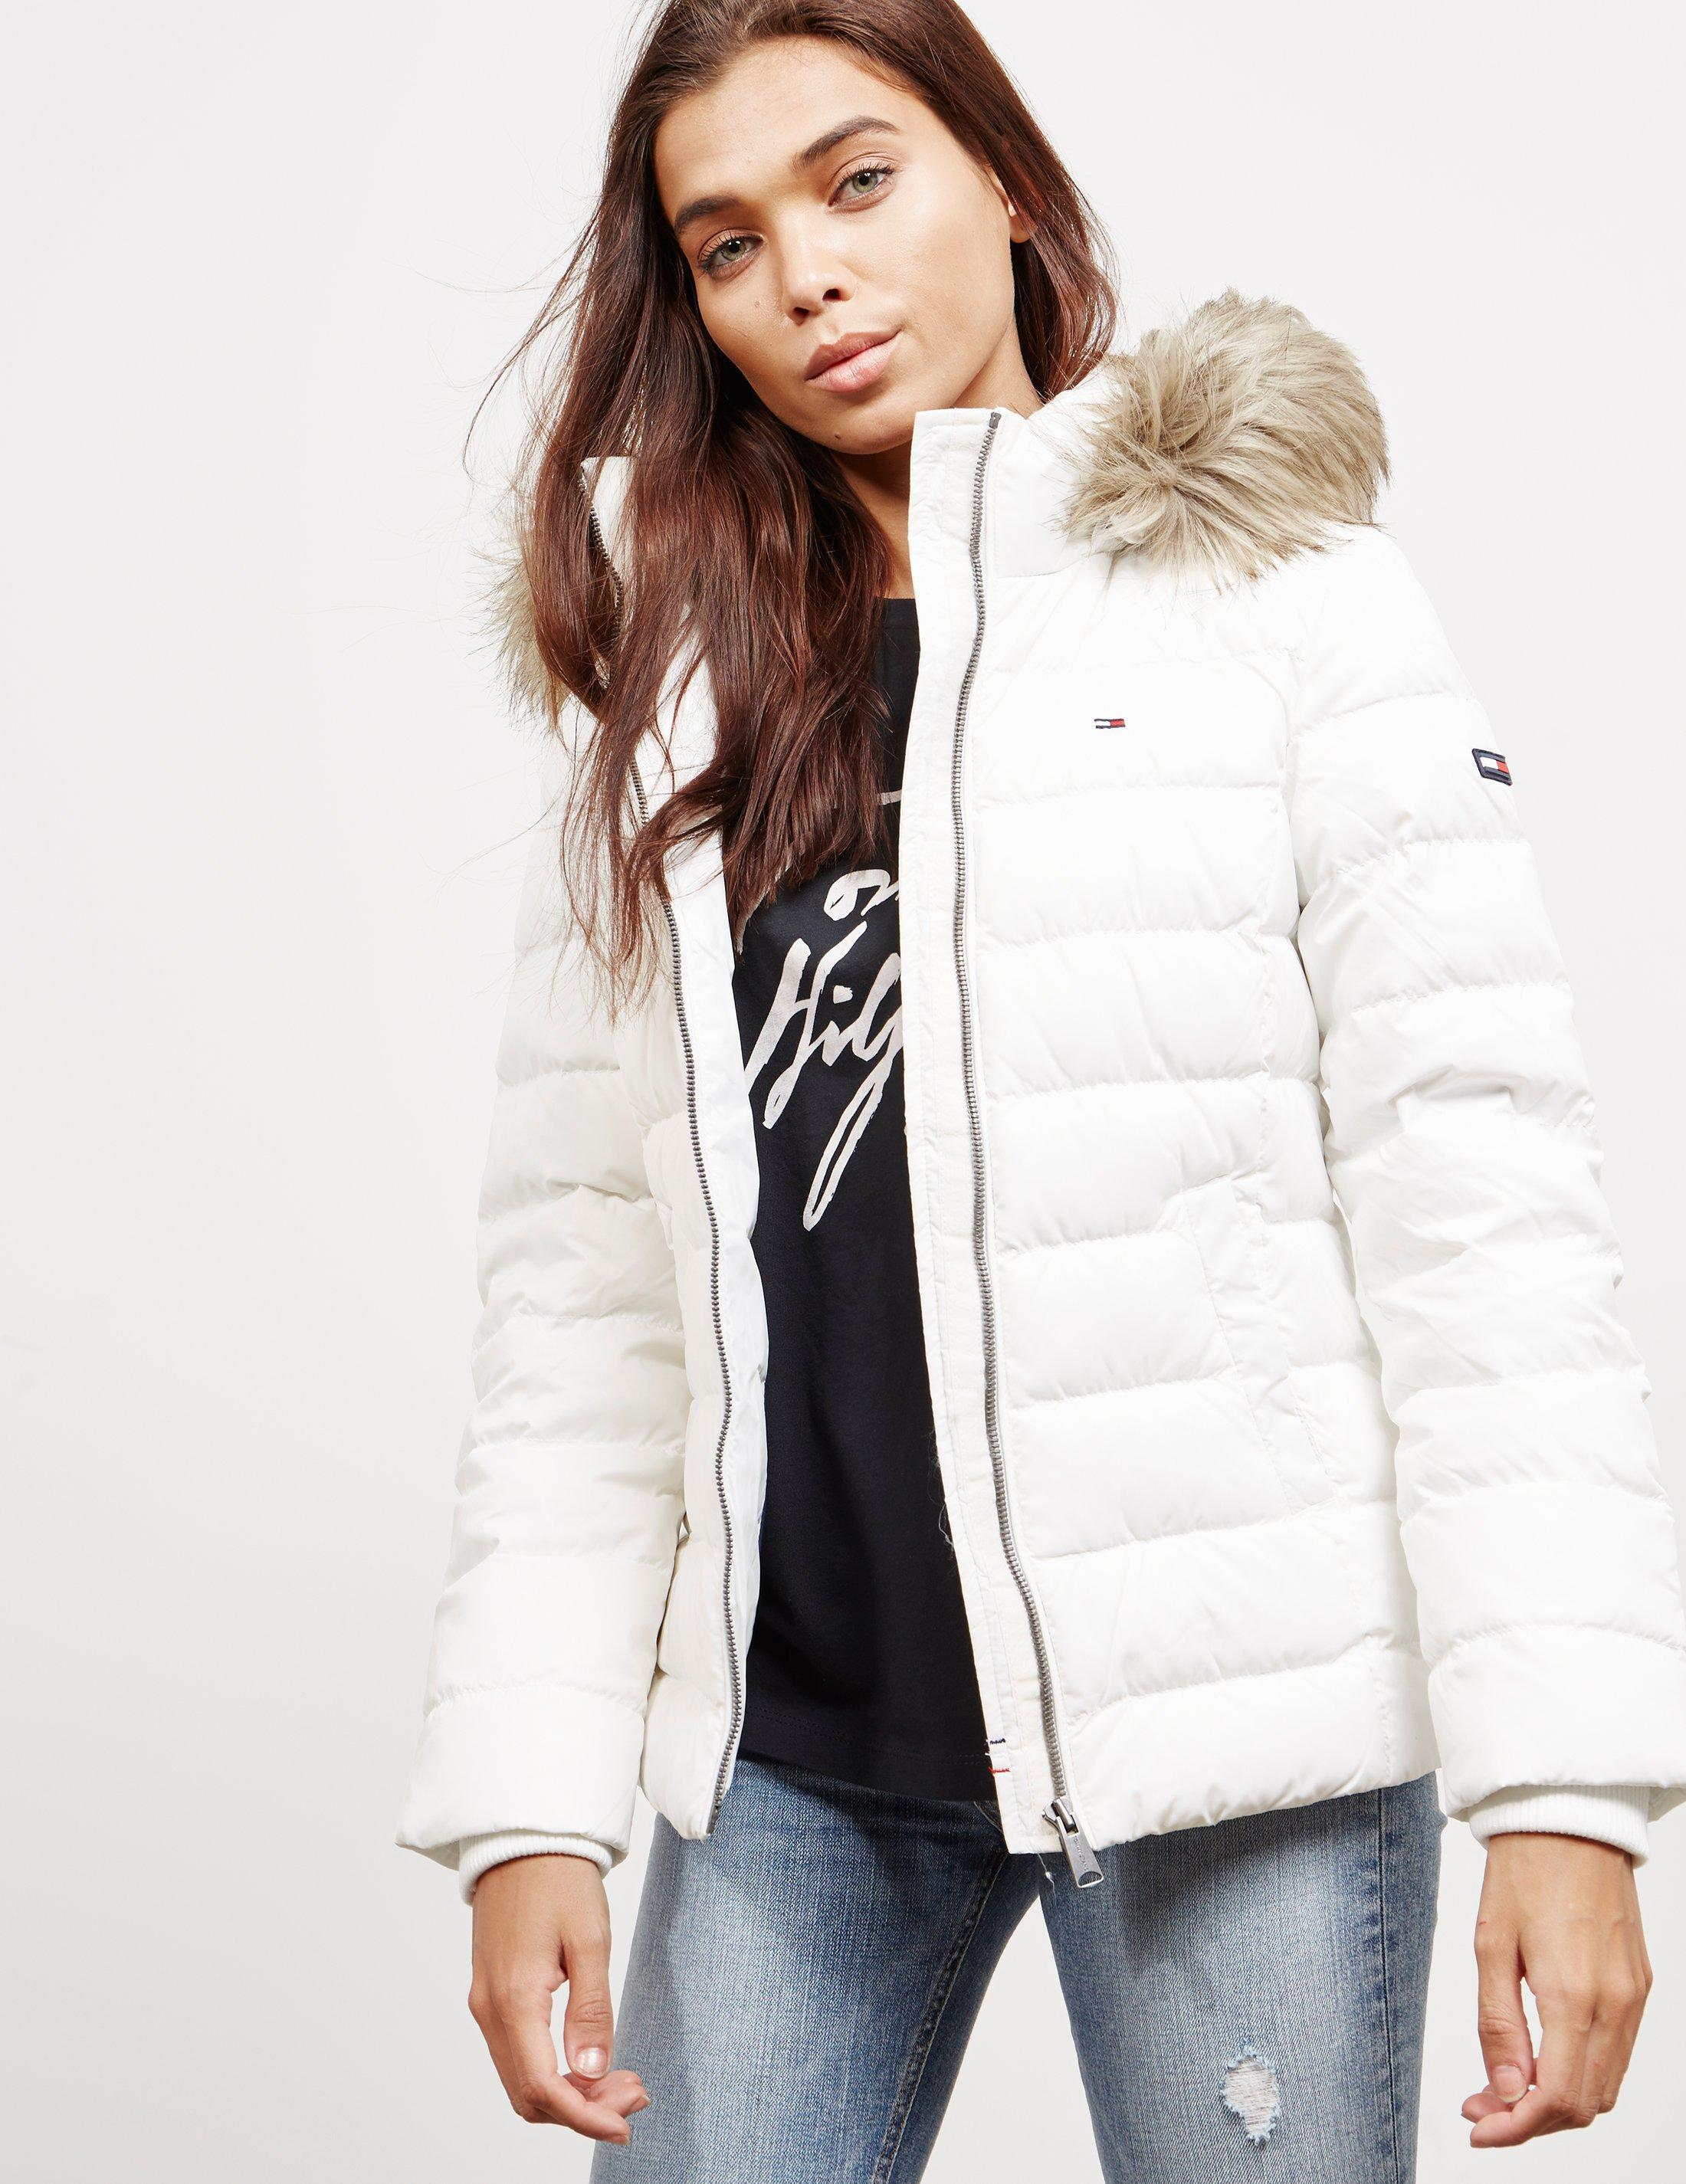 Lyst - Tommy Hilfiger Essential Down Jacket White in White 6a50d1c3ef